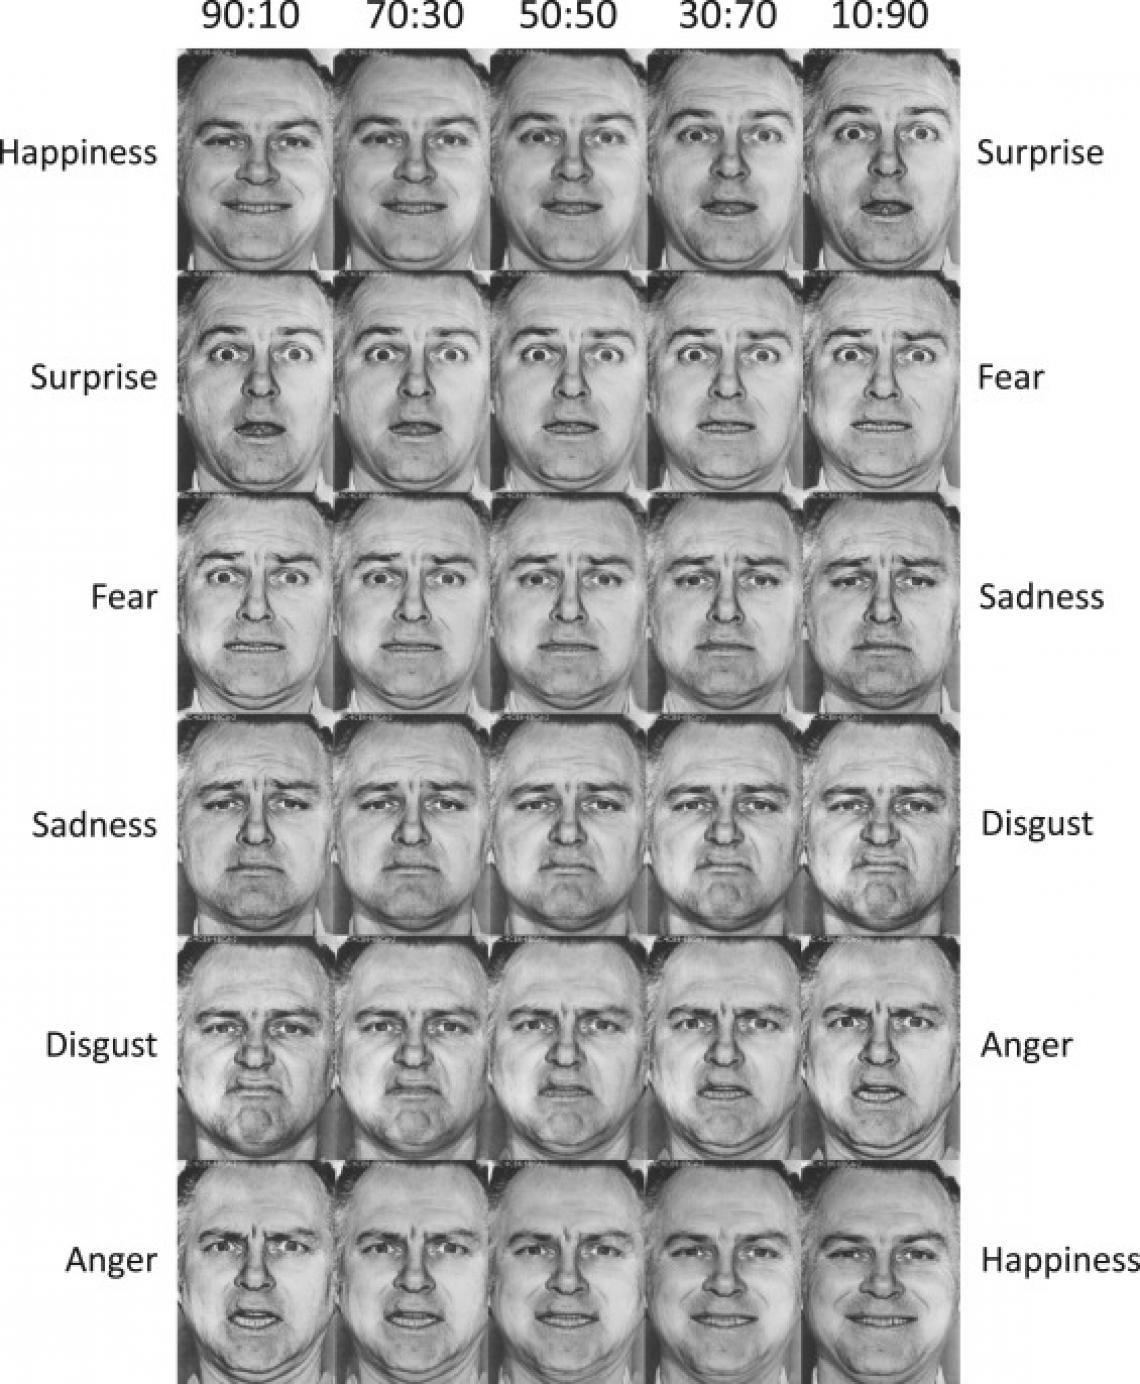 Study participants were shown faces and asked to identify the emotion.